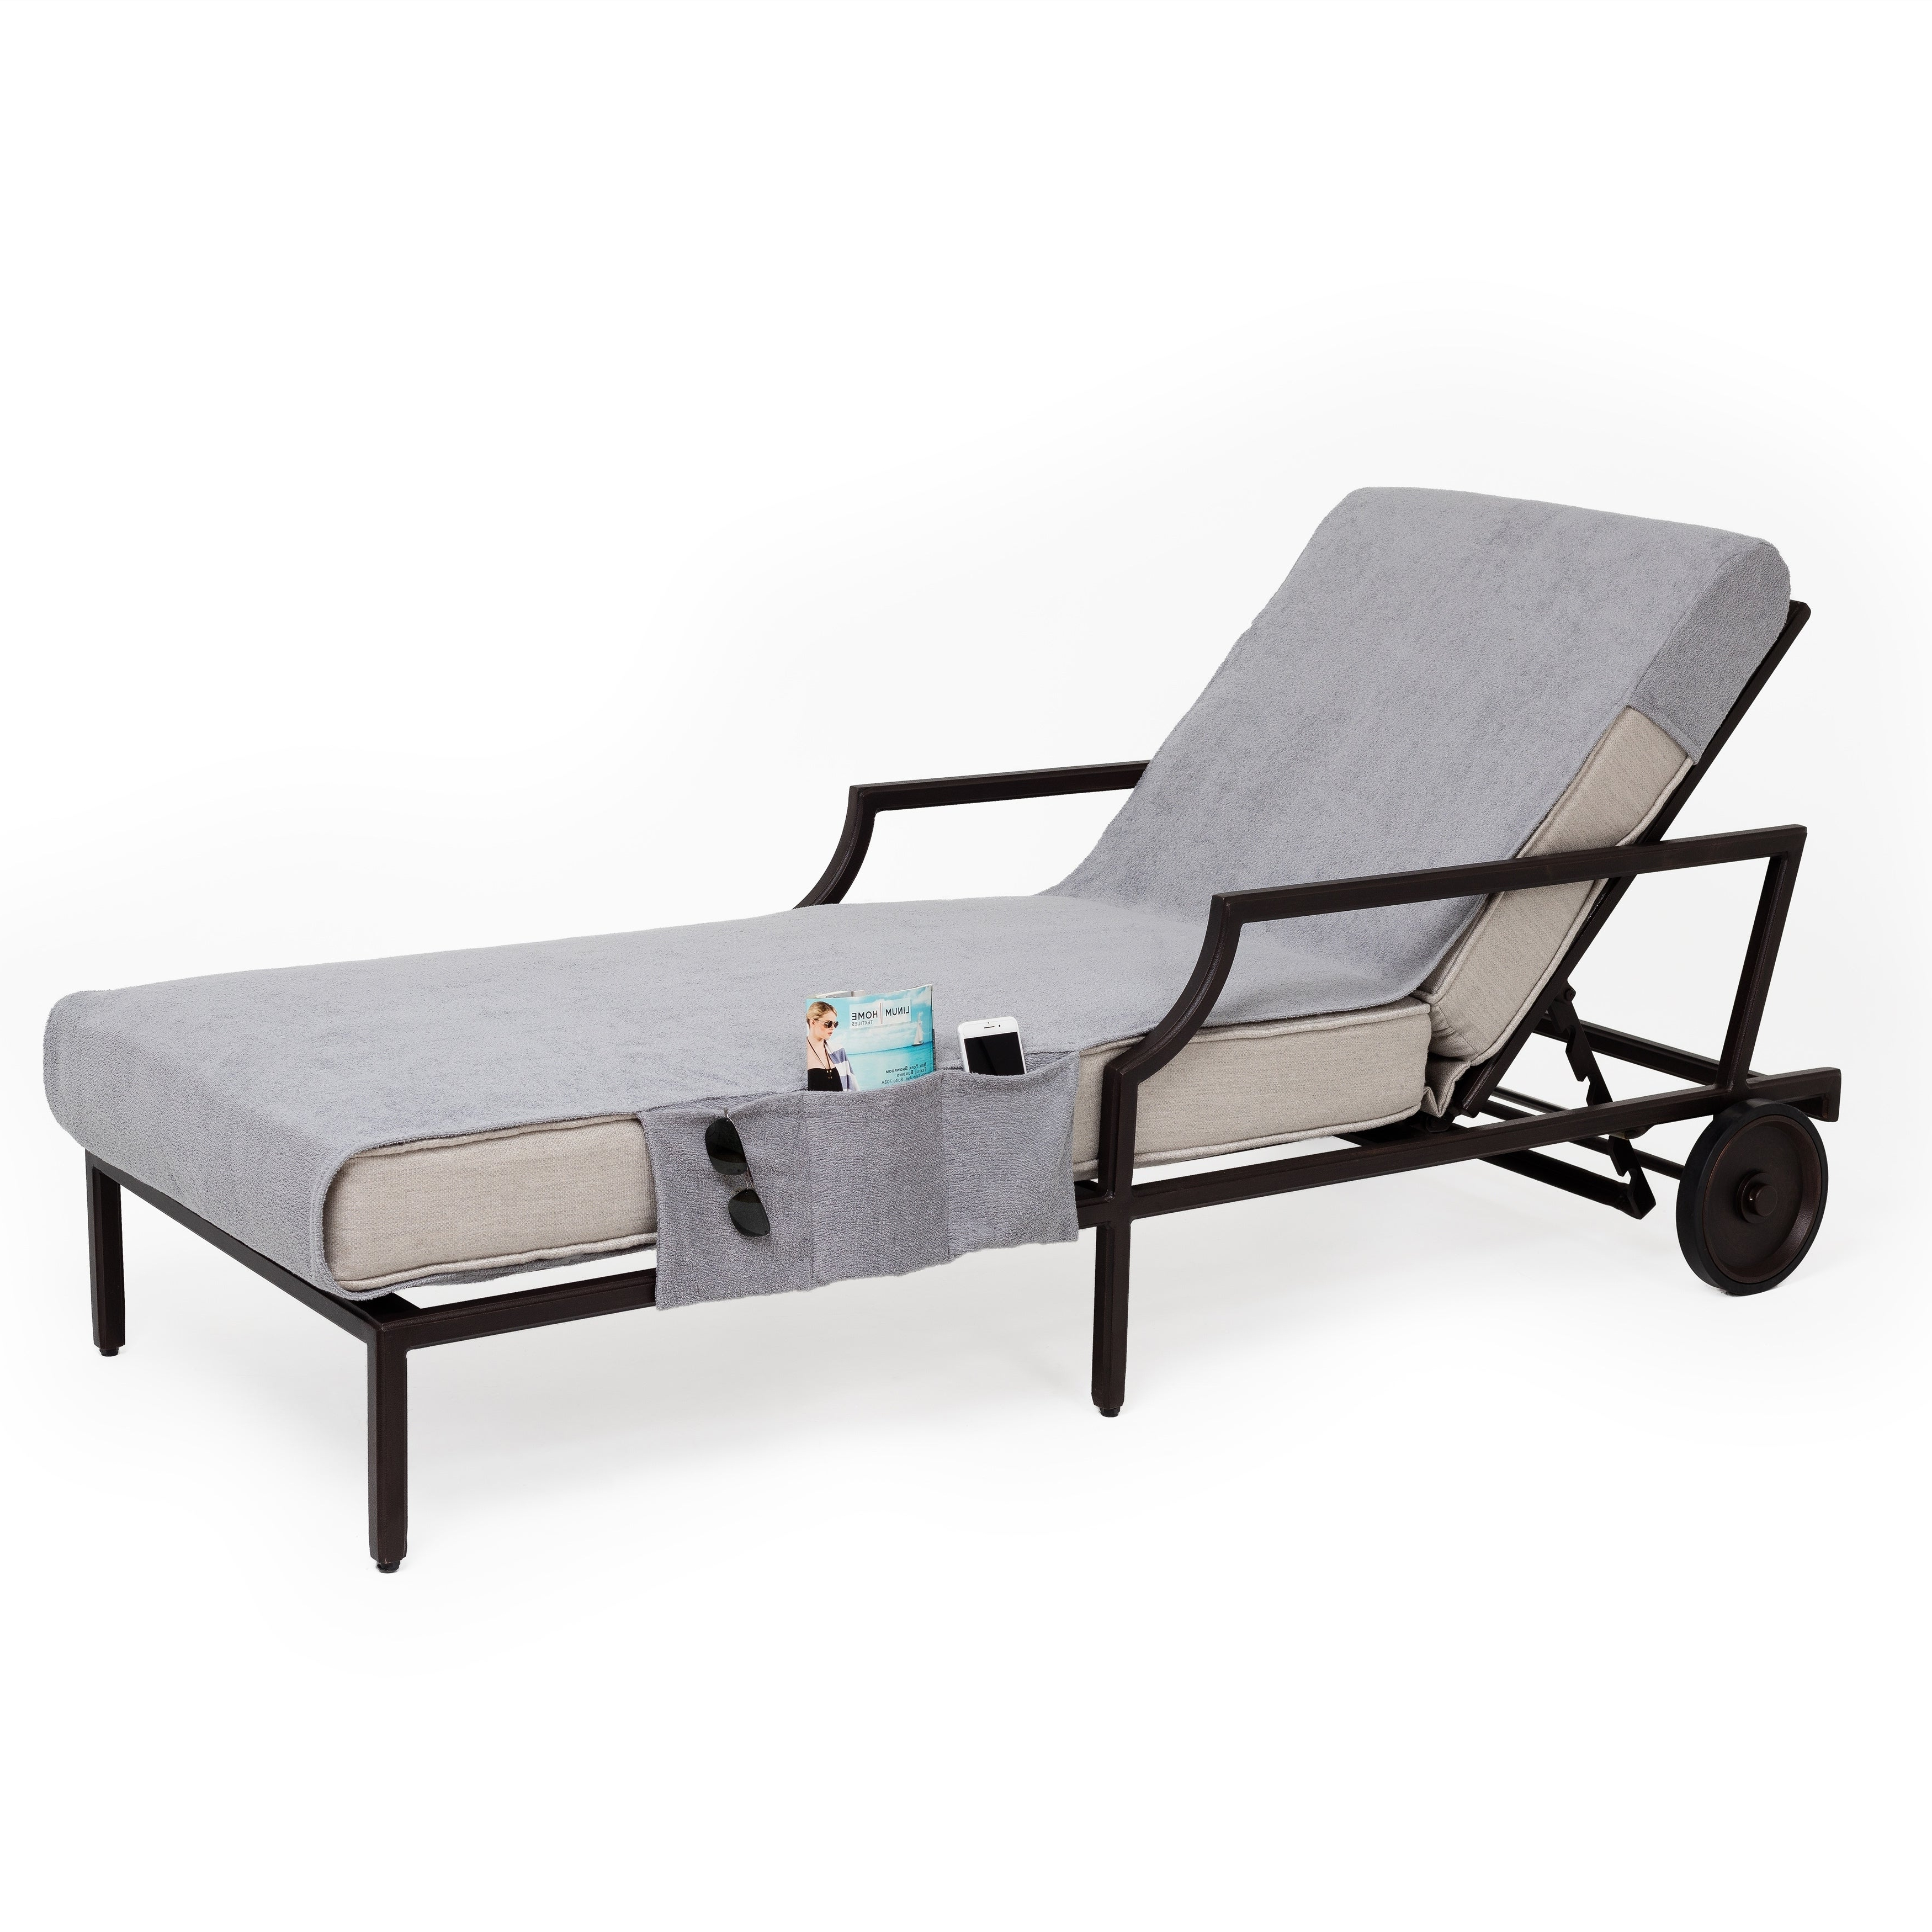 Standard Size Chaise Lounge Chairs With Regard To Well Known Authentic Turkish Cotton Grey Towel Cover With Pocket For Standard Size Chaise Lounge Chair (View 6 of 25)